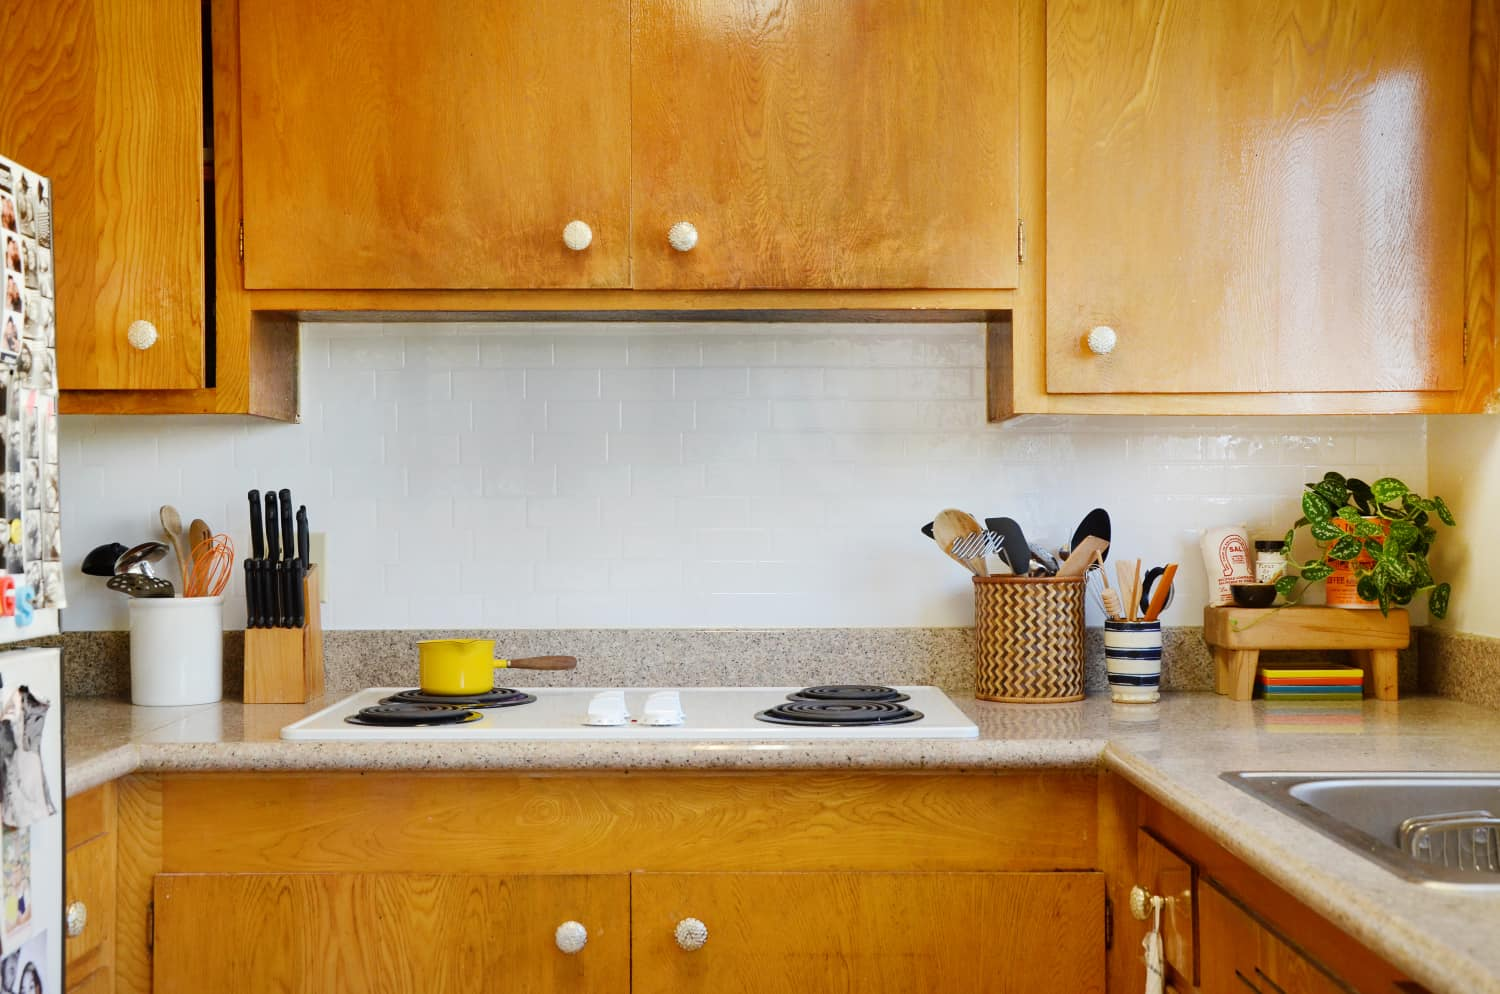 Not in Love With Your Backsplash? We Tested Adhesive, Removable Smart Tiles